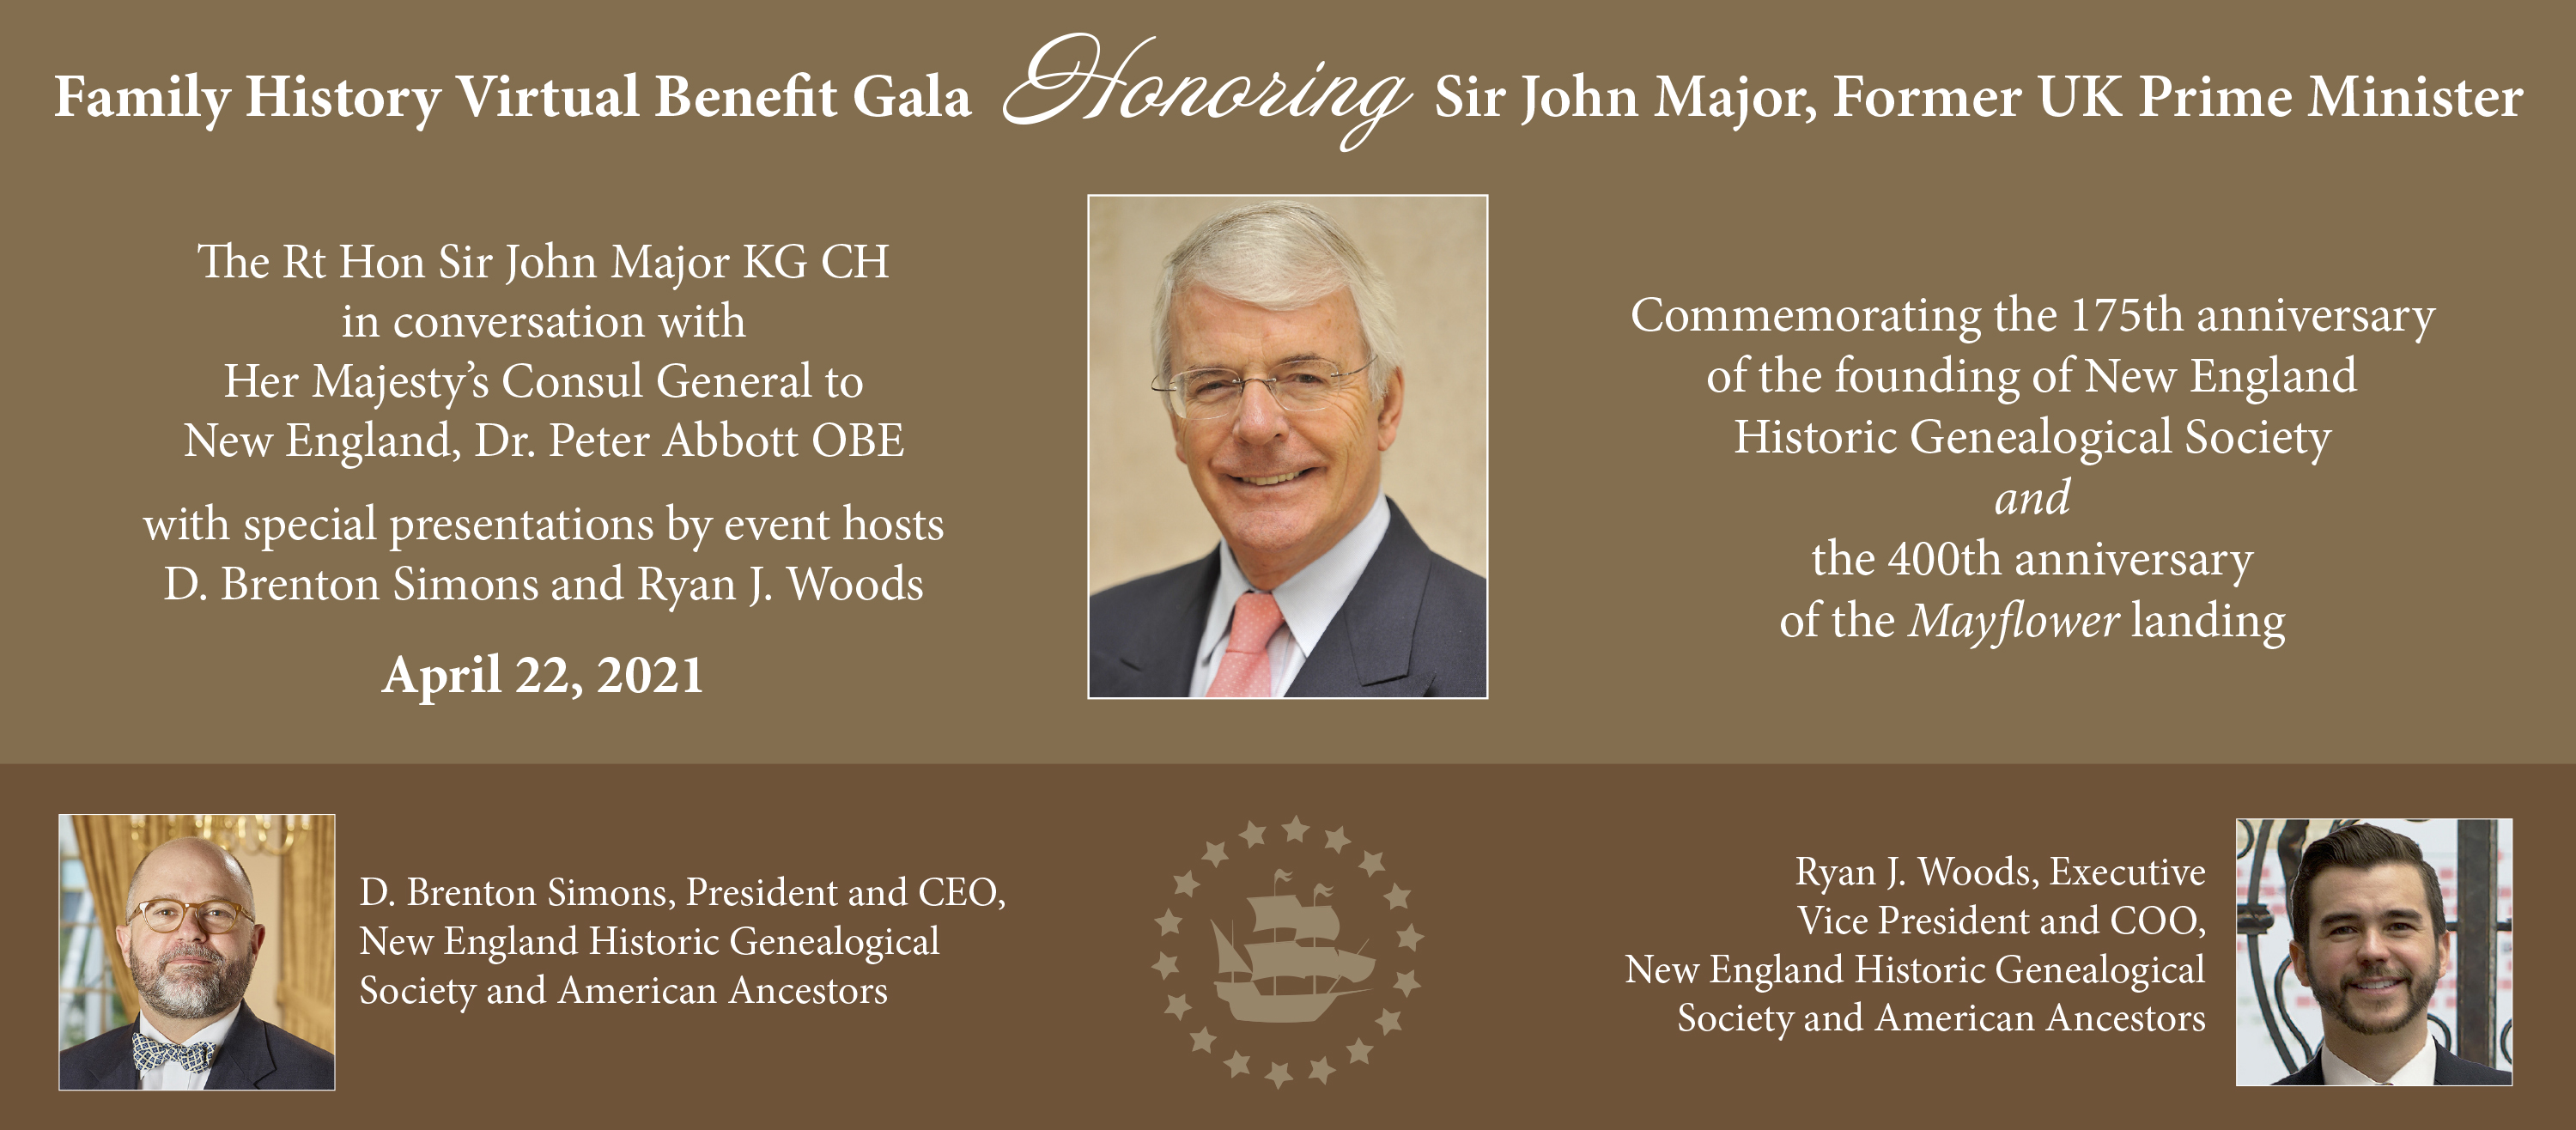 Register Now! Family History Virtual Benefit Gala Honoring the Rt Hon Sir John Major KG CH